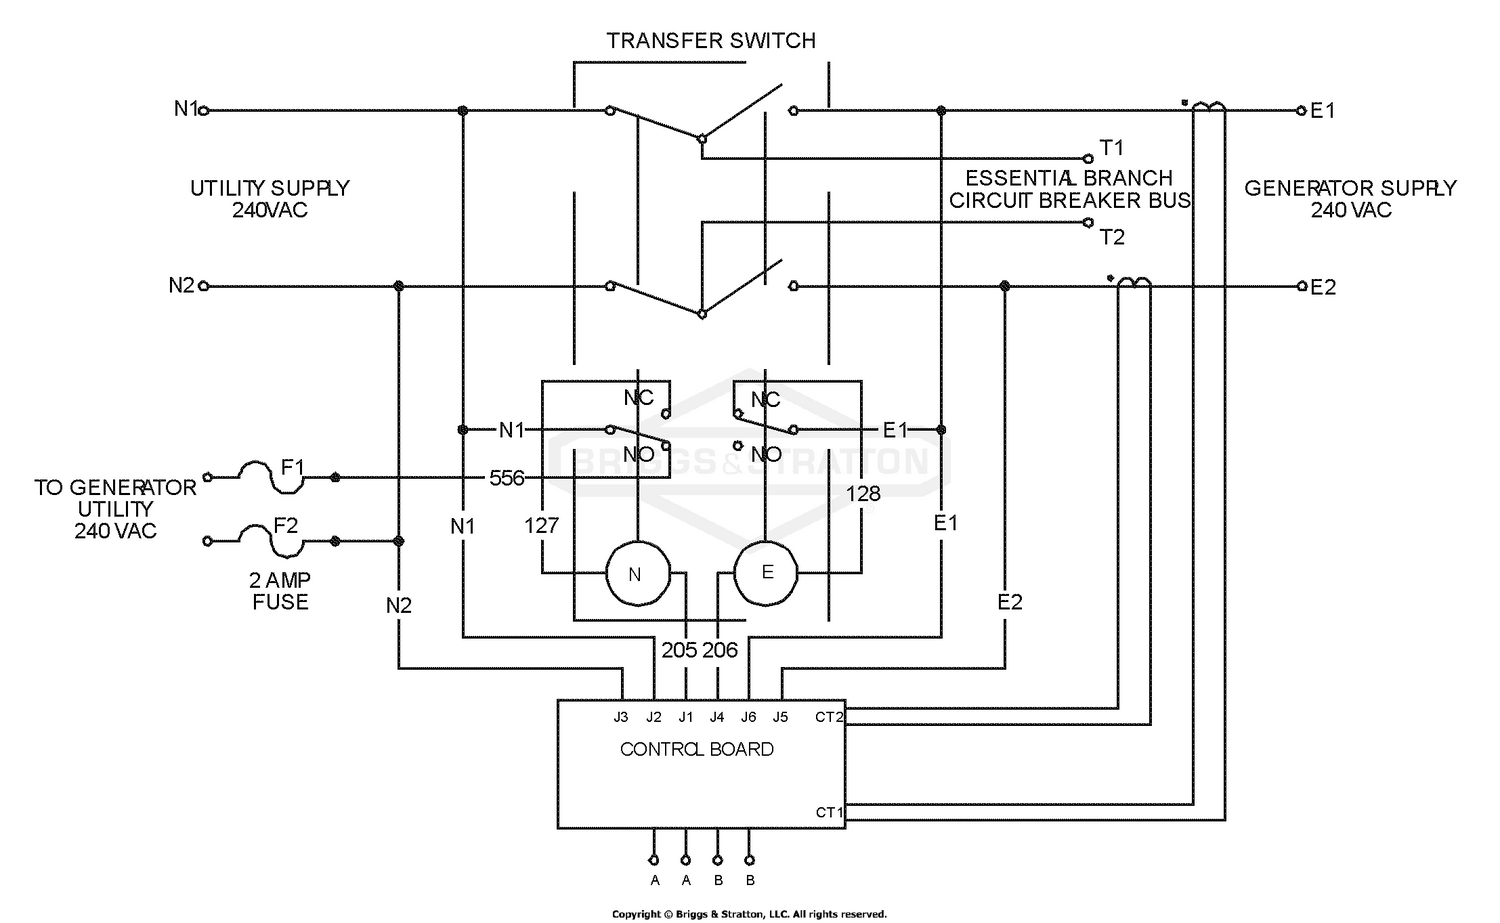 Wiring Schematic - Transfer Switch